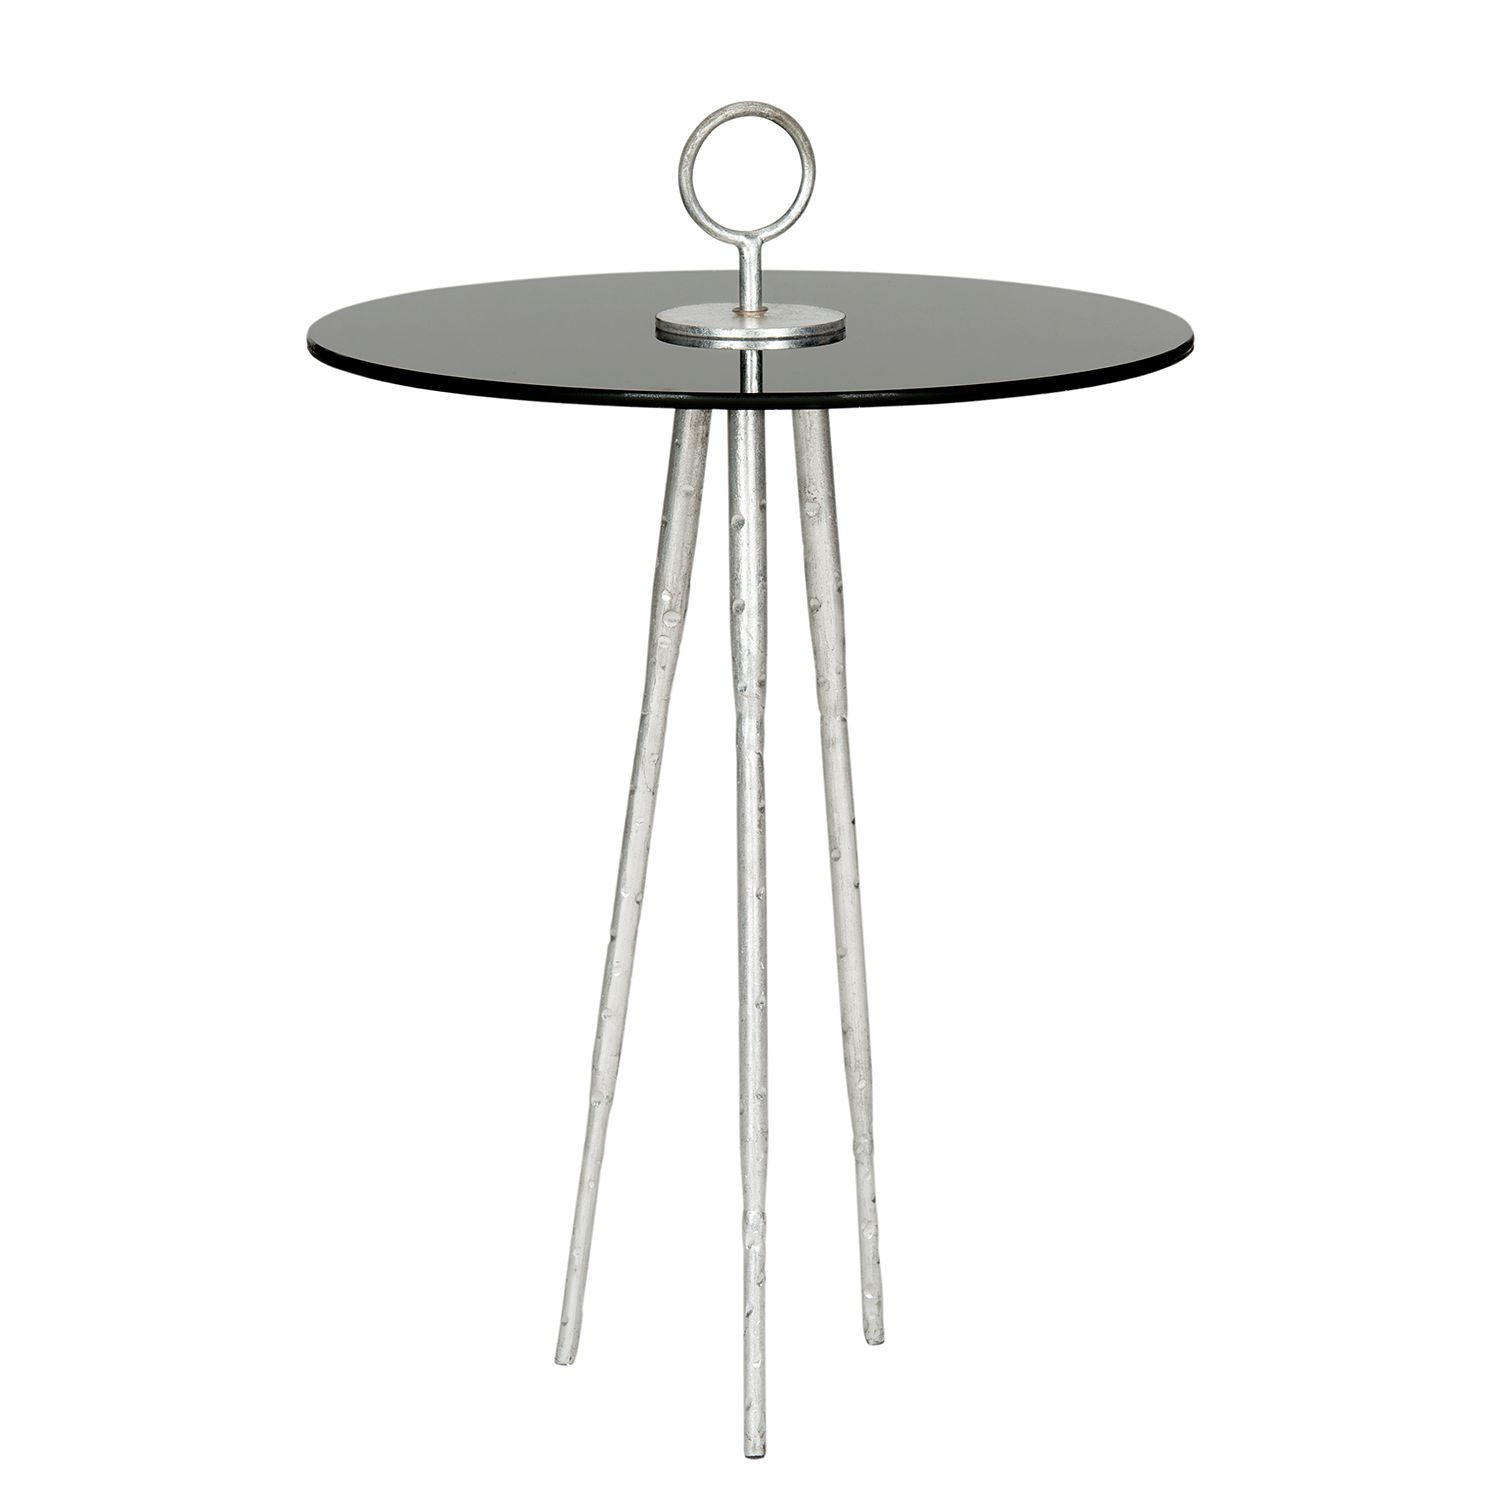 Table d'appoint Delam